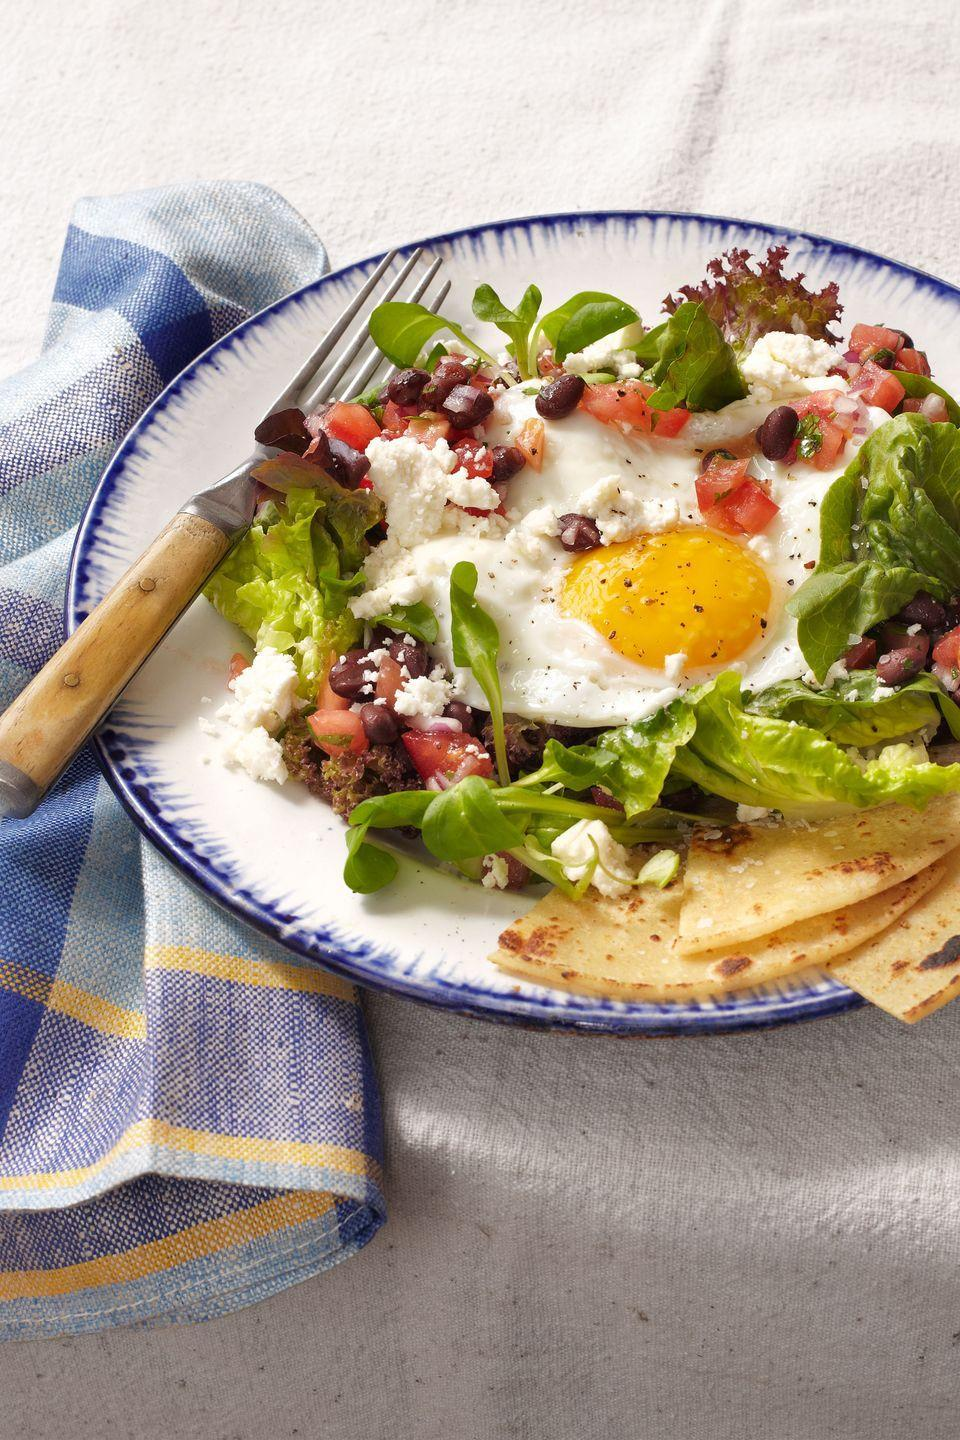 """<p>A bright, sunny-side-up fried egg steals the show on this Southwestern salad topped with queso fresco, cilantro, and a citrusy black-bean-and-tomato salsa.</p><p><strong><a href=""""https://www.countryliving.com/food-drinks/recipes/a6175/huevos-rancheros-salad-recipe-clv0214/"""" rel=""""nofollow noopener"""" target=""""_blank"""" data-ylk=""""slk:Get the recipe"""" class=""""link rapid-noclick-resp"""">Get the recipe</a>.</strong></p>"""